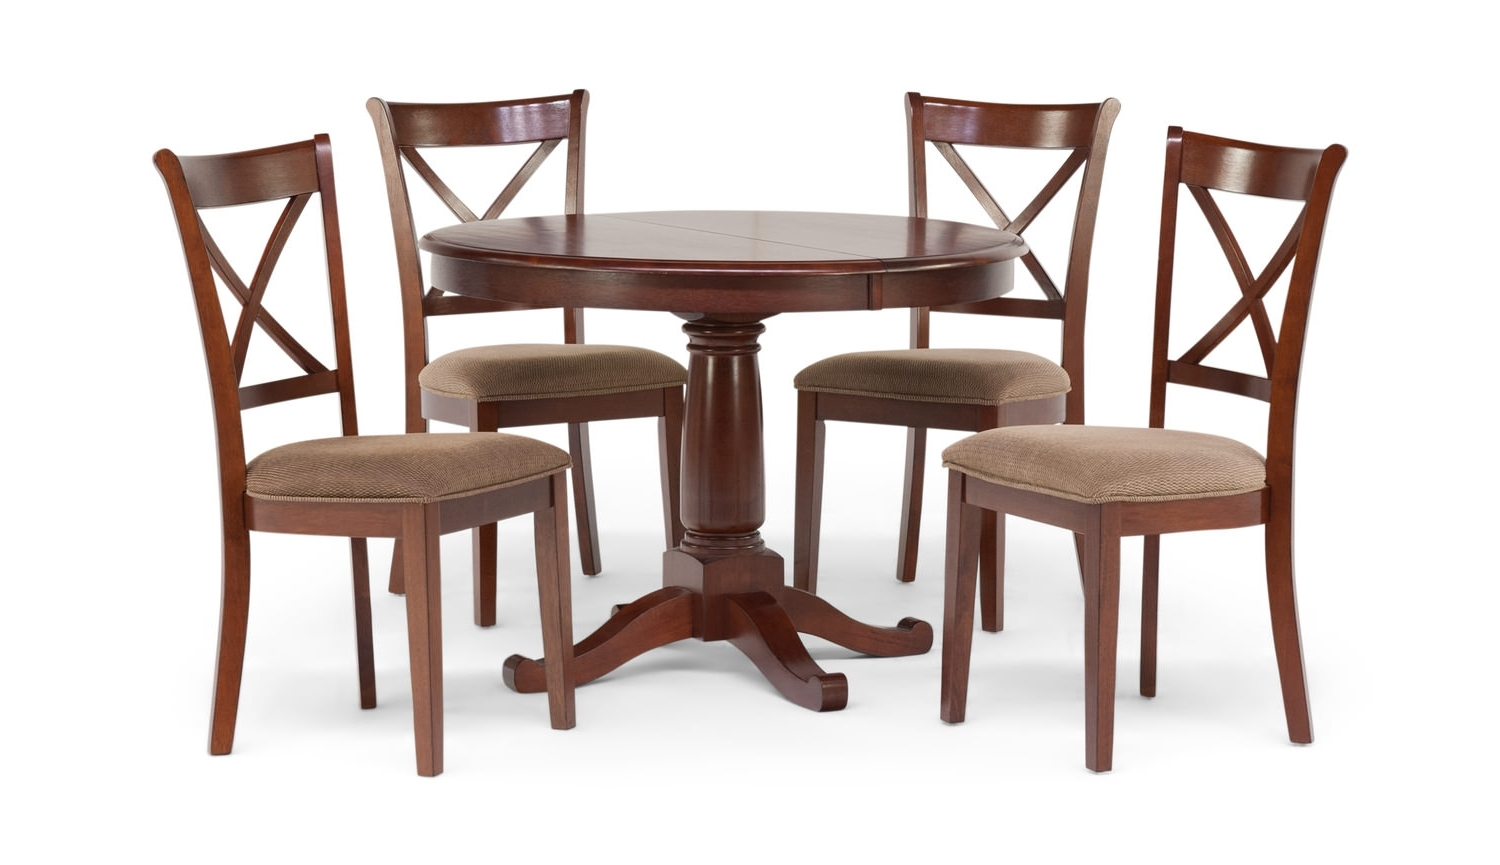 Caden 5 Piece Round Dining Sets With Upholstered Side Chairs Pertaining To Famous Desoto Table With 4 Chairsthomas Cole (View 25 of 25)